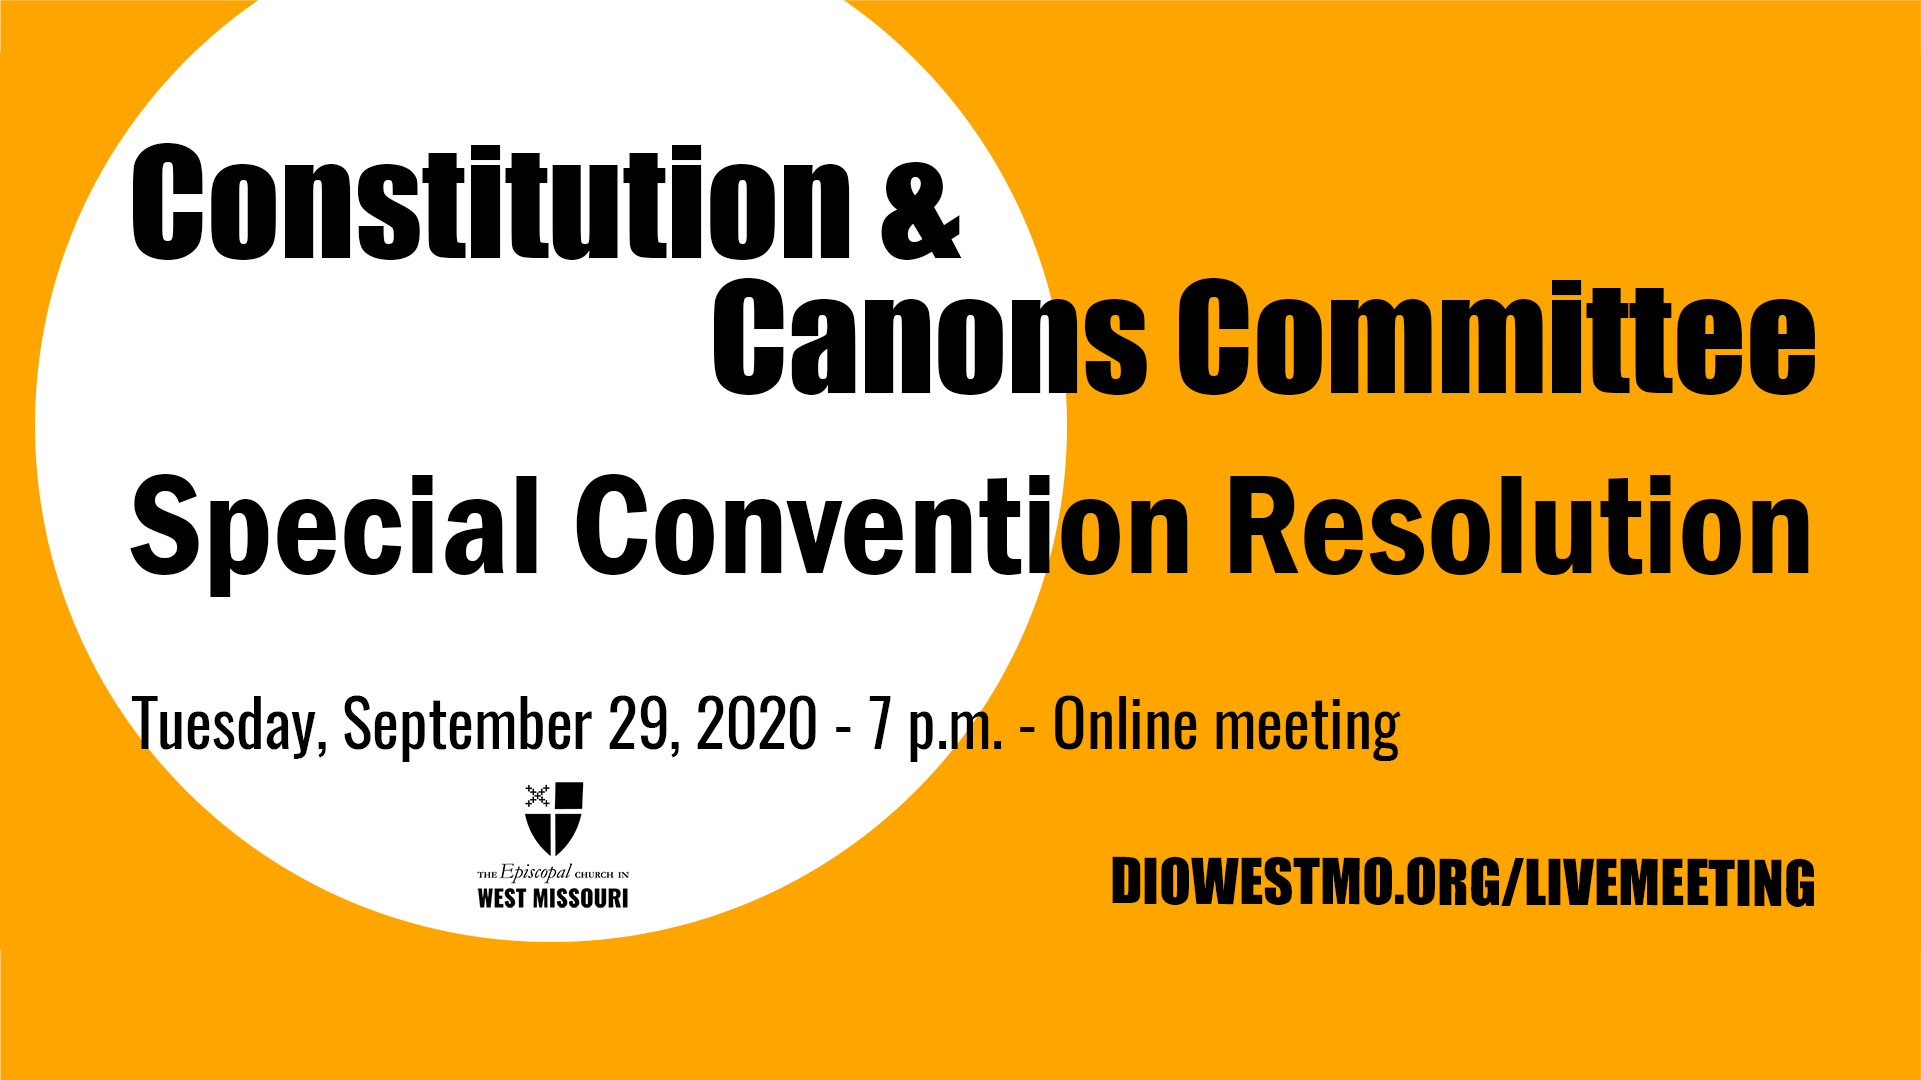 Constitution & Canons Committee – Special Convention Resolution